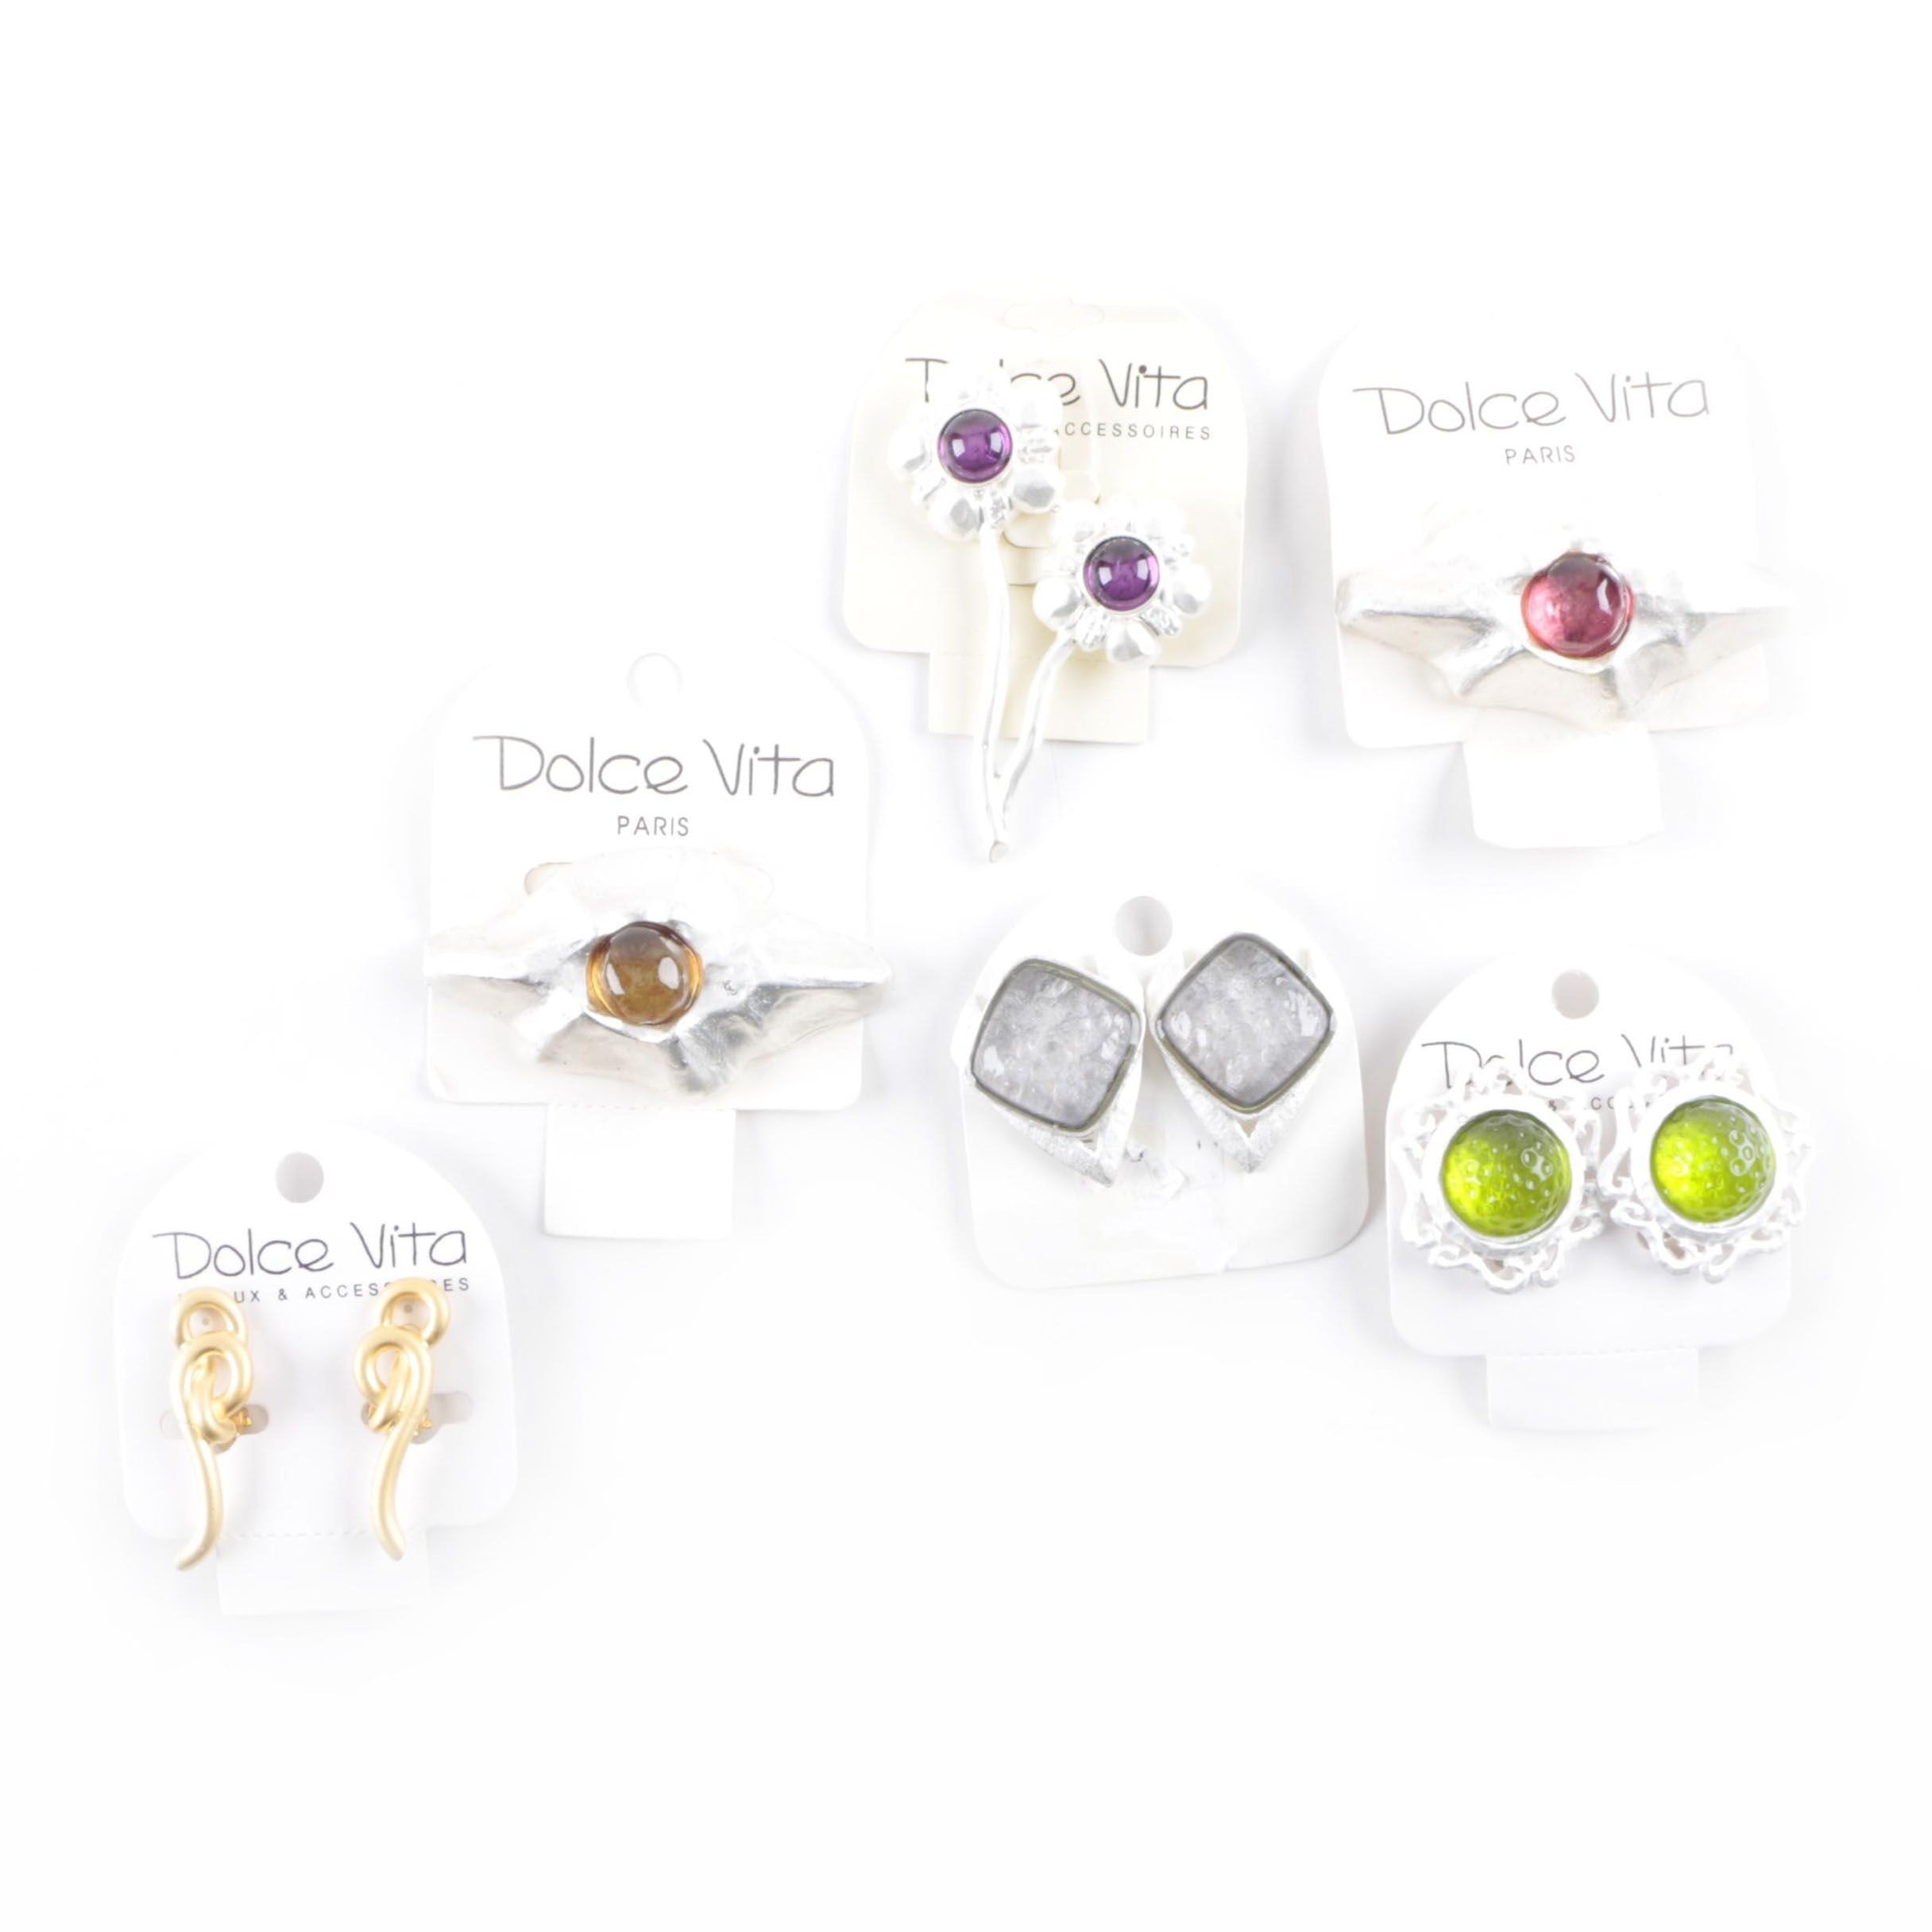 Selection of Dolce Vita Gold and Silver Tone Clip On Earrings and Brooches